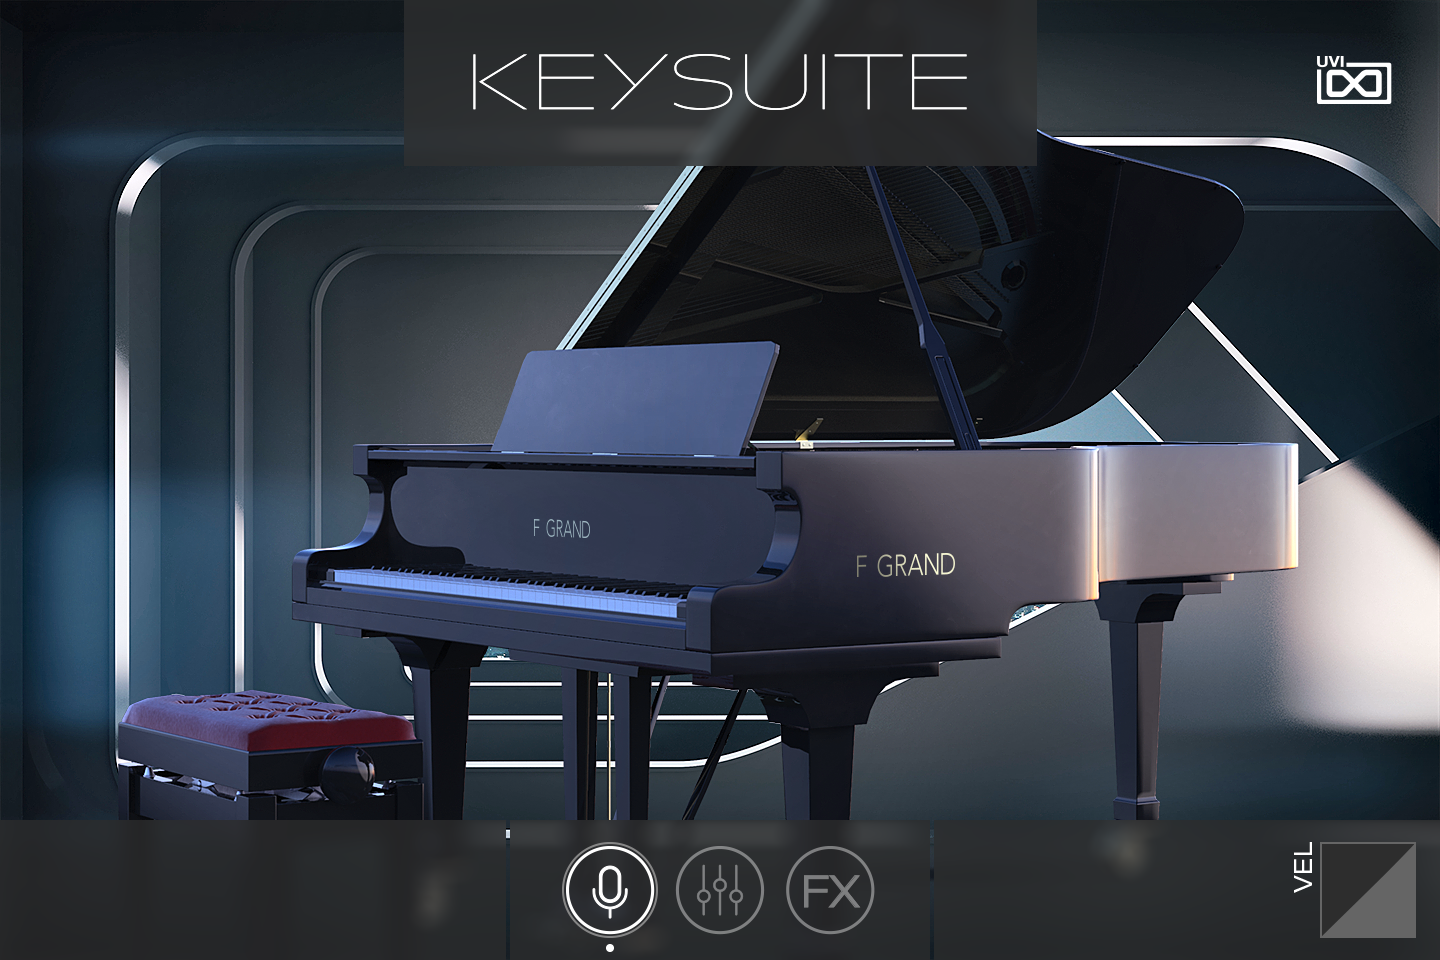 UVI Key Suite Acoustic | FGrand Main